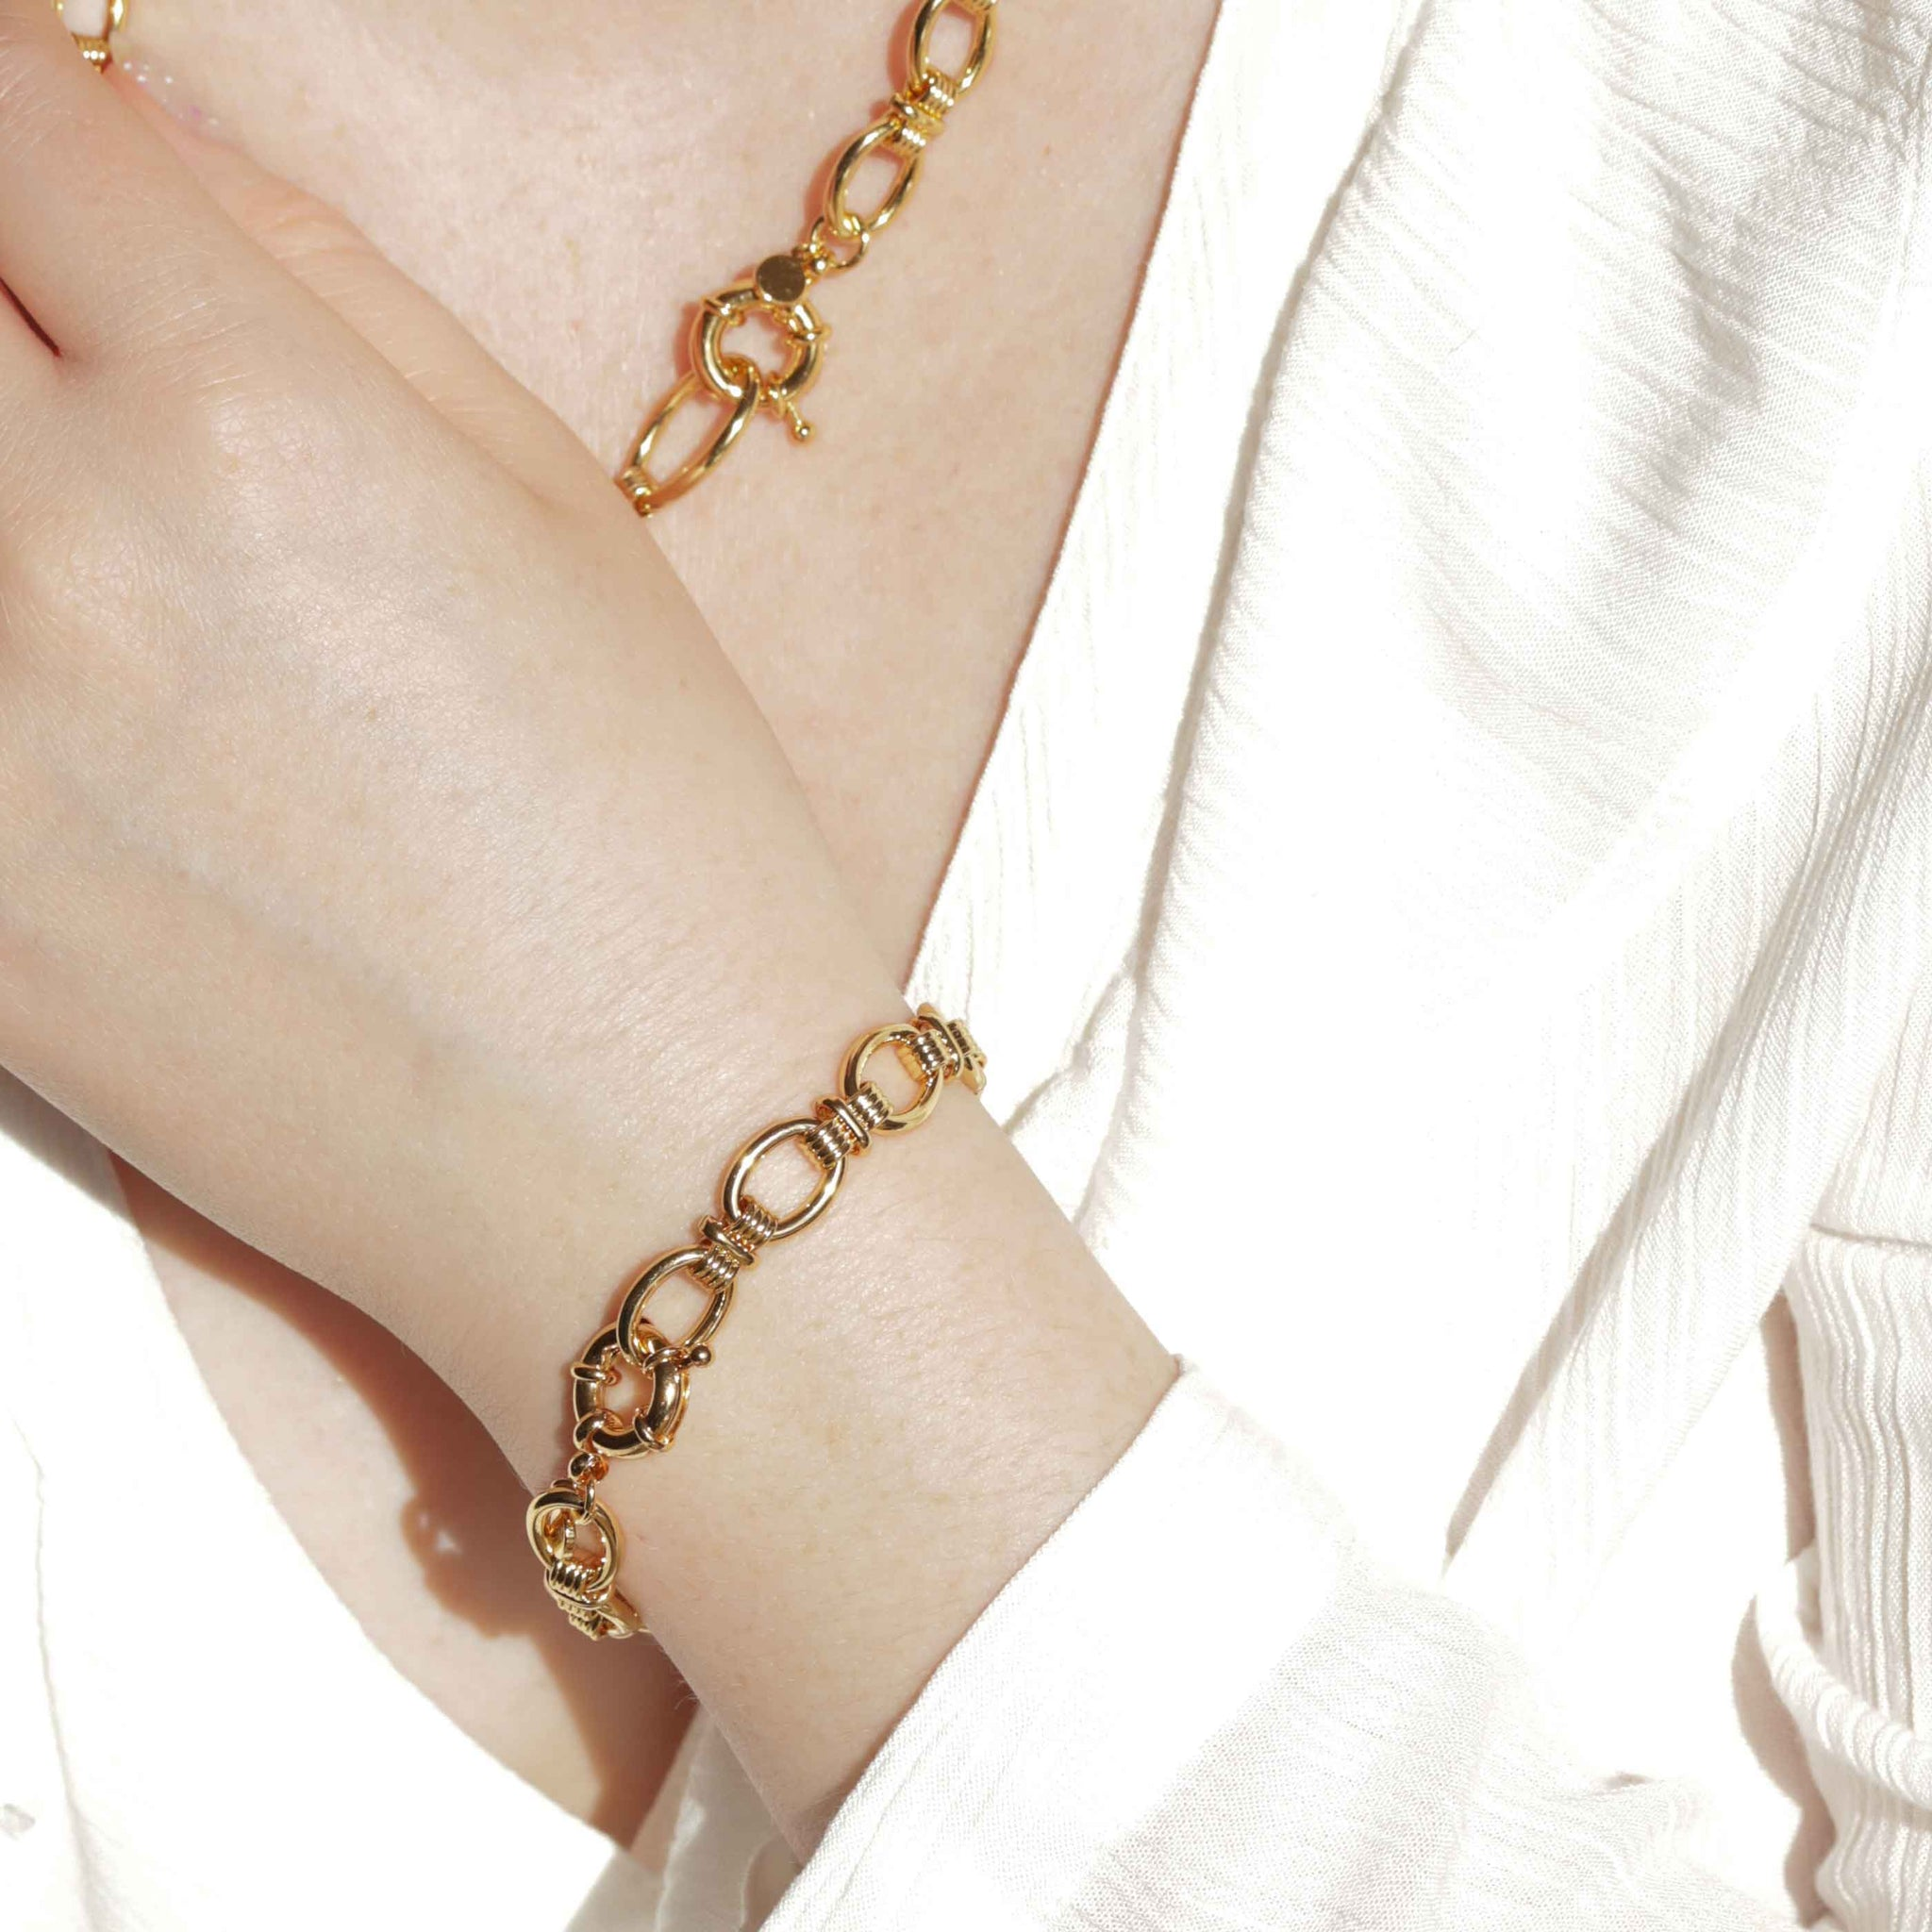 Ribbed Link Chain Bracelet in Gold